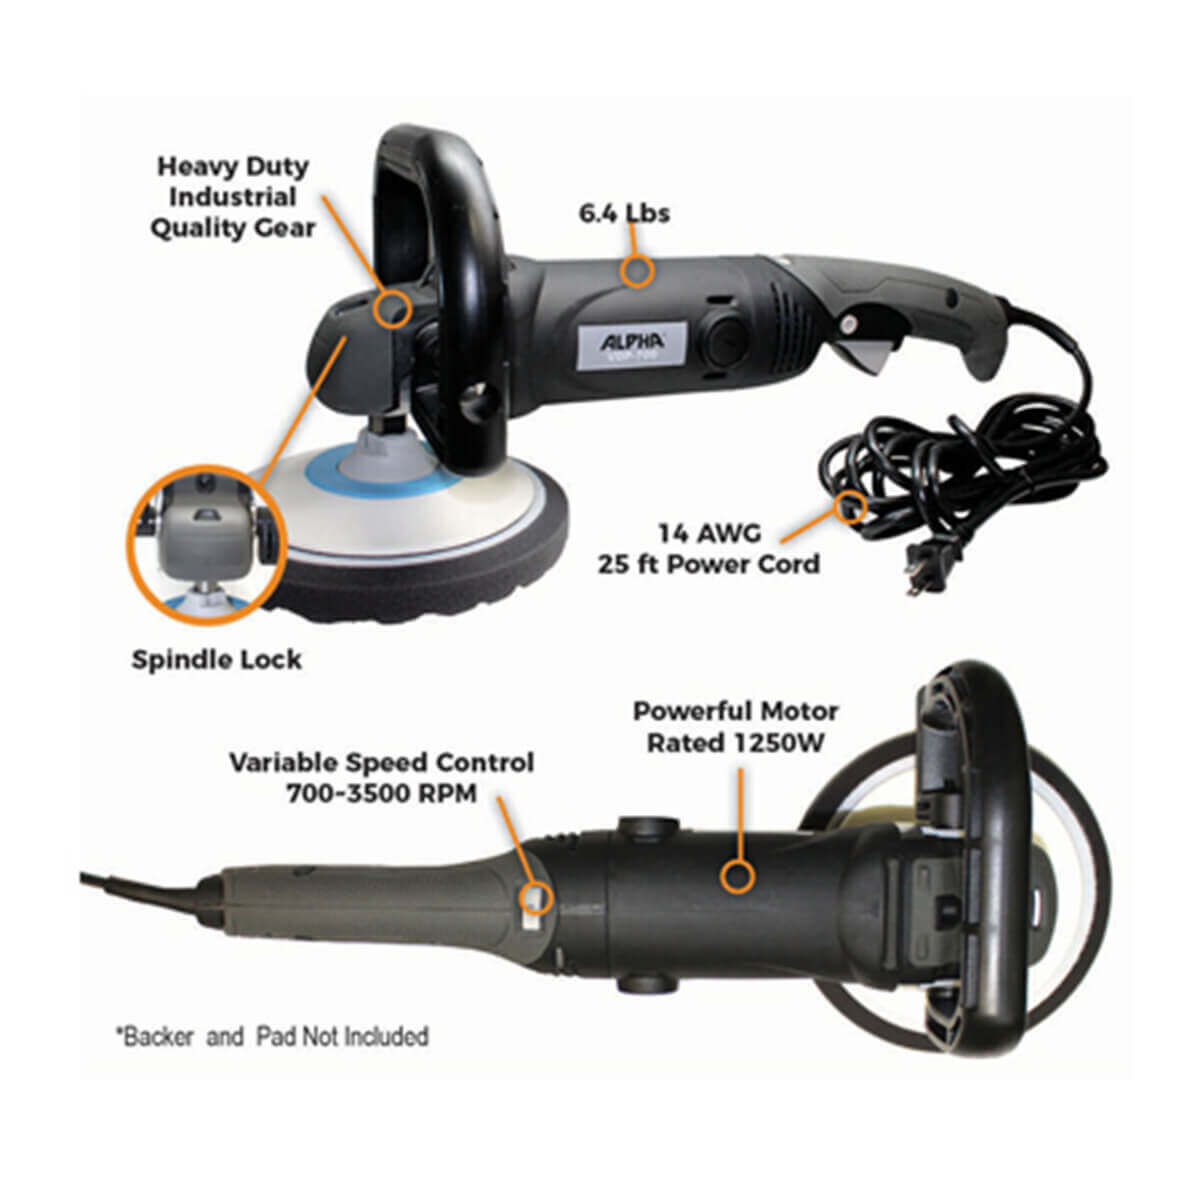 Alpha VDP-700 Variable Speed Polisher Components